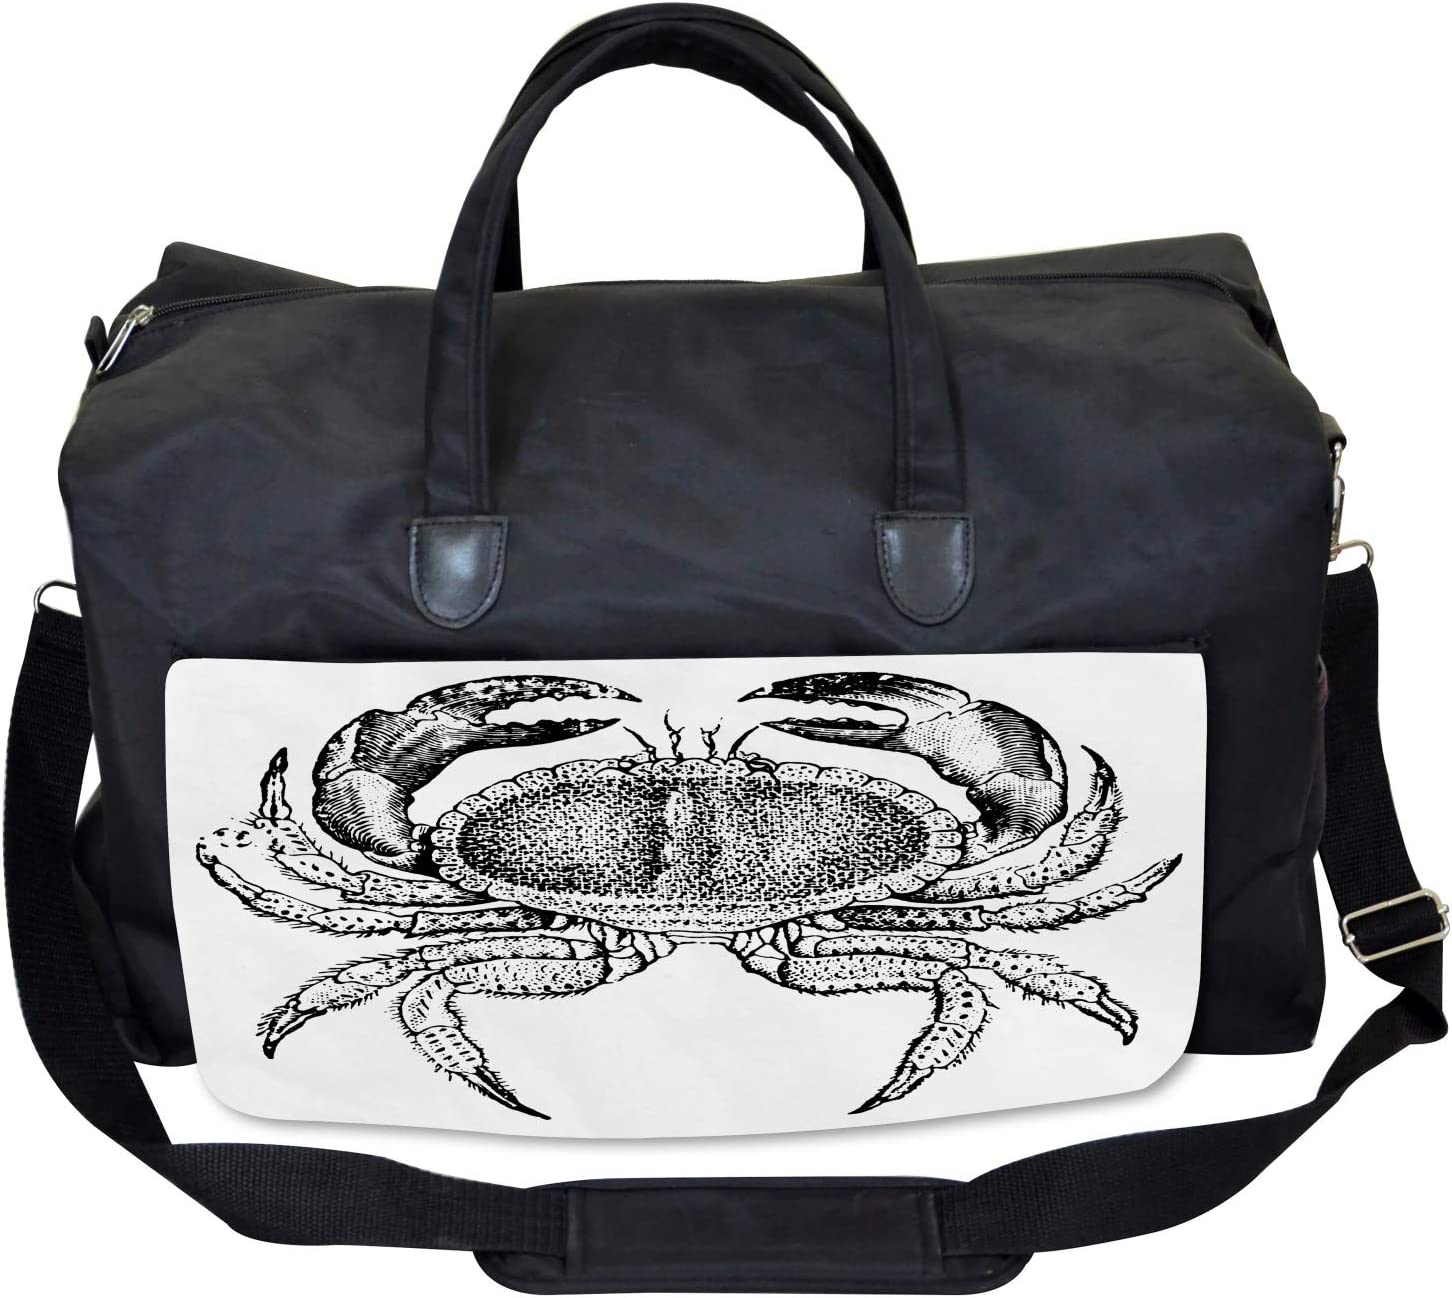 Seafood Theme Design Large Weekender Carry-on Ambesonne Vintage Gym Bag